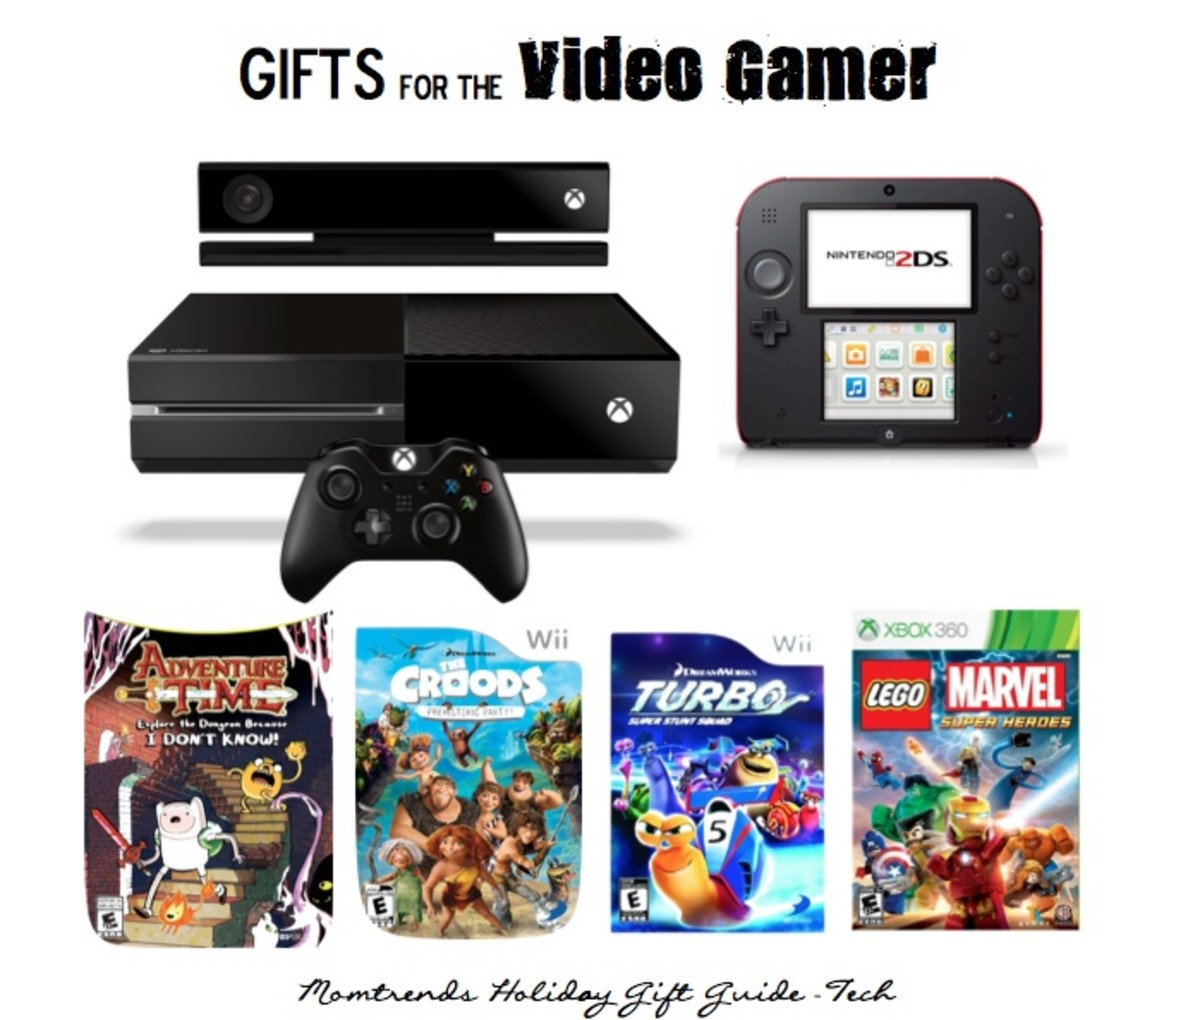 new video games for the holidays